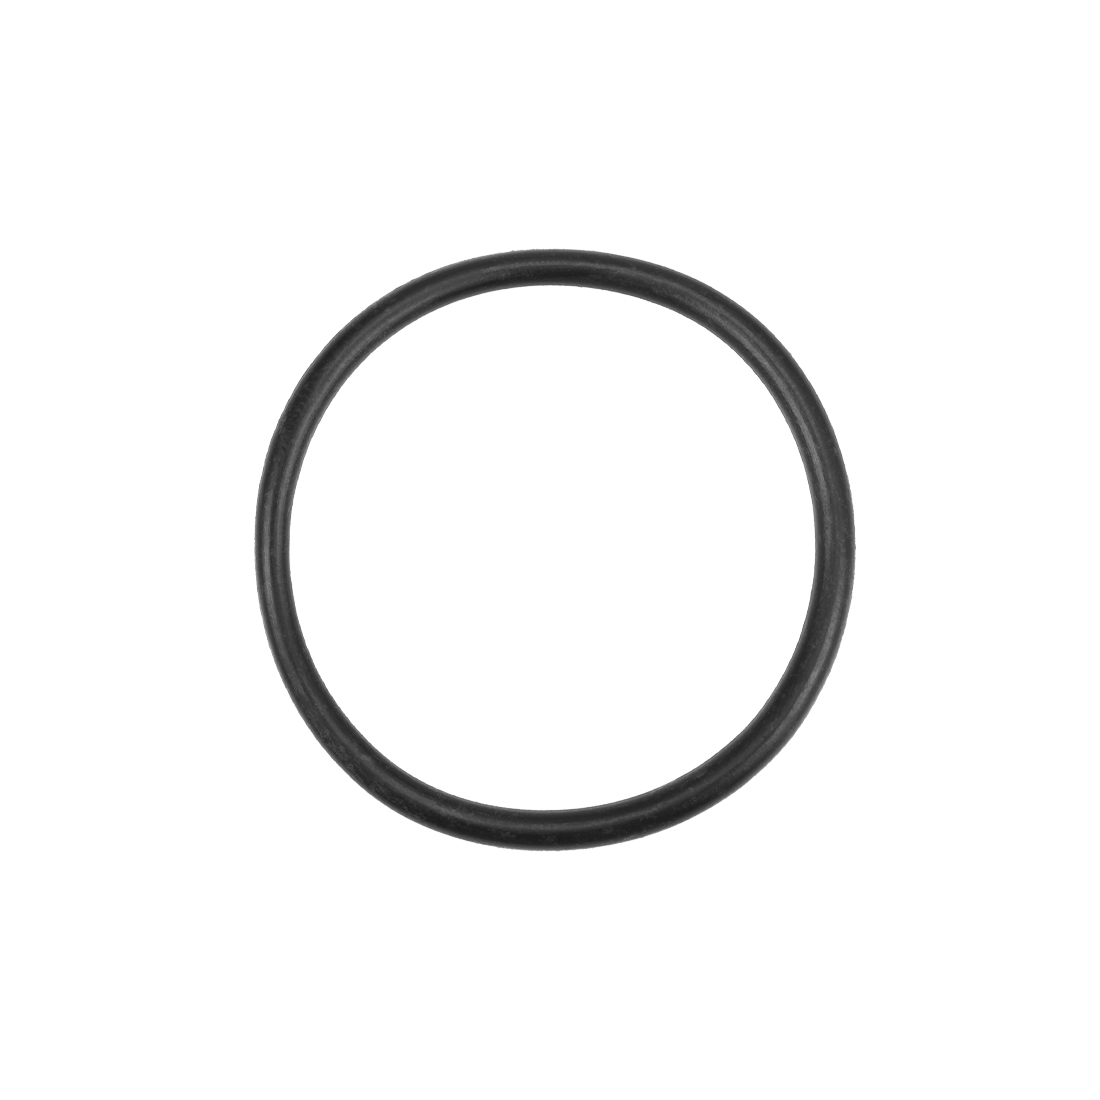 O-Rings Nitrile Rubber 36.5mm x 41.8mm x 2.65mm Round Seal Gasket